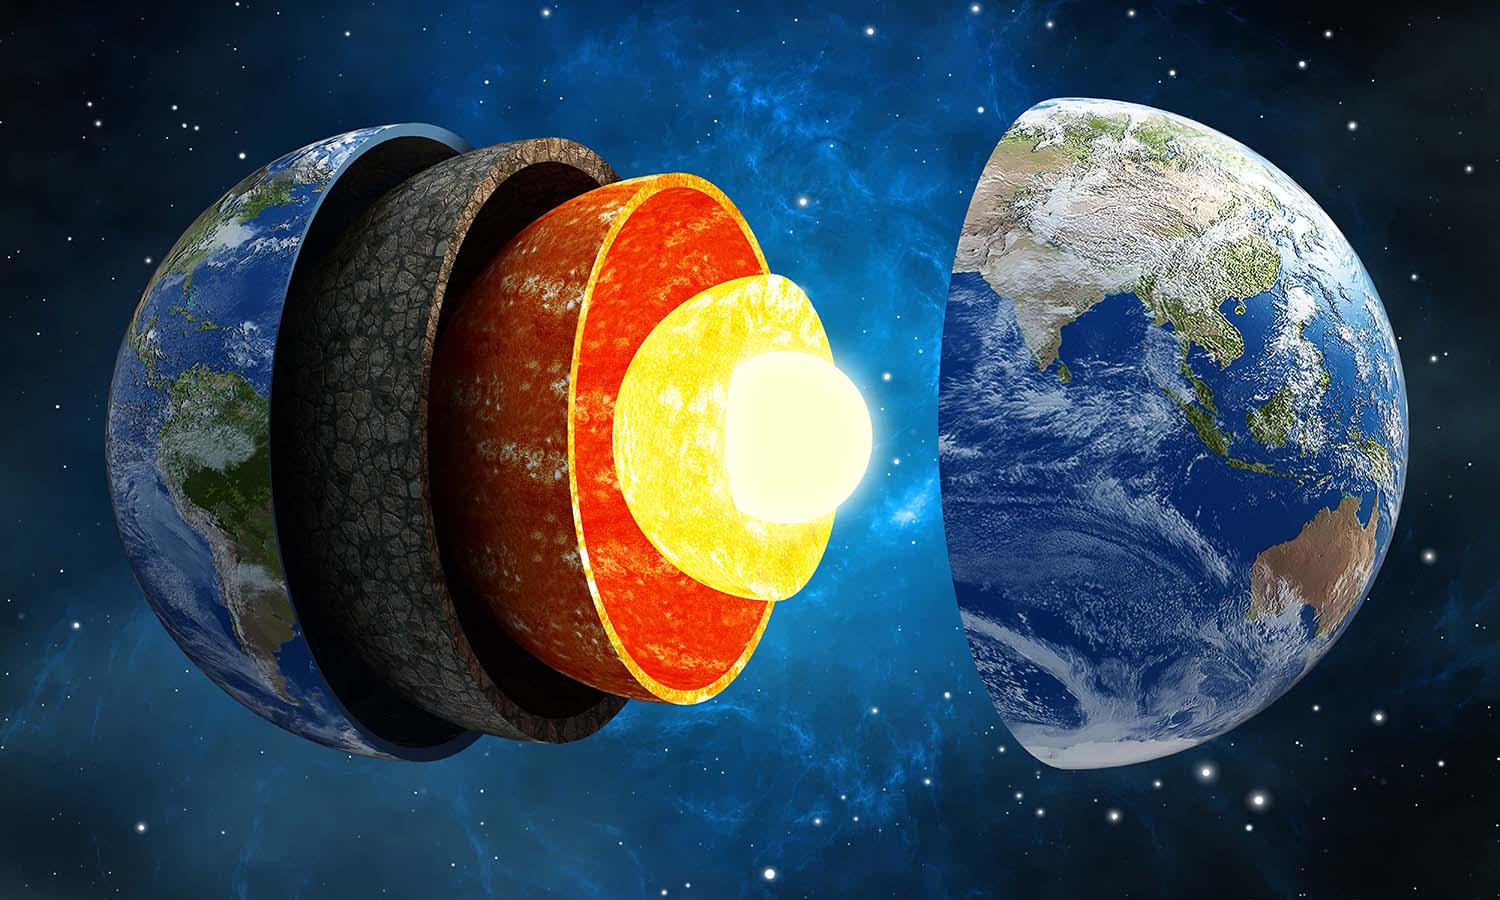 3D illustration showing layers of the Earth in space